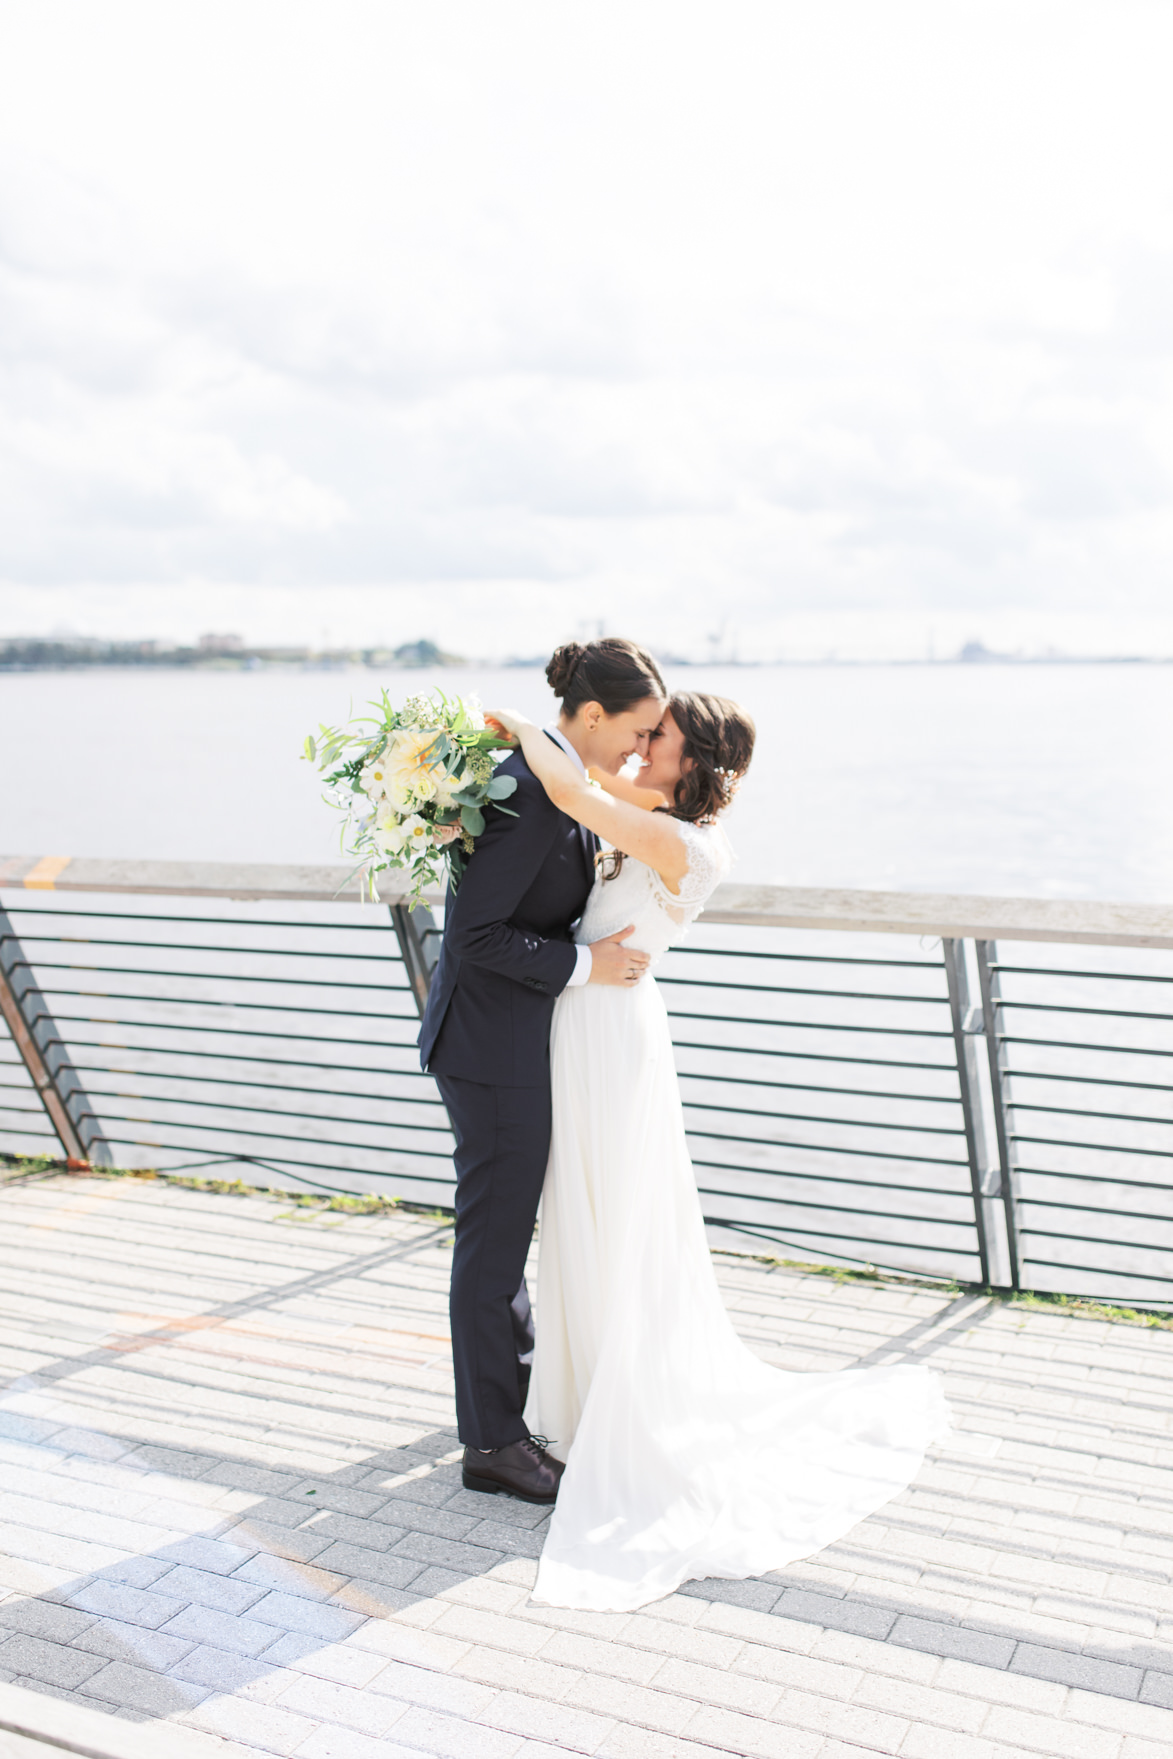 The happy couple share a kiss on Race Street Pier overlooking the Delaware River for their modern and elegant old city Philadelphia Power Plant Productions wedding. Power Plant Production wedding photographer